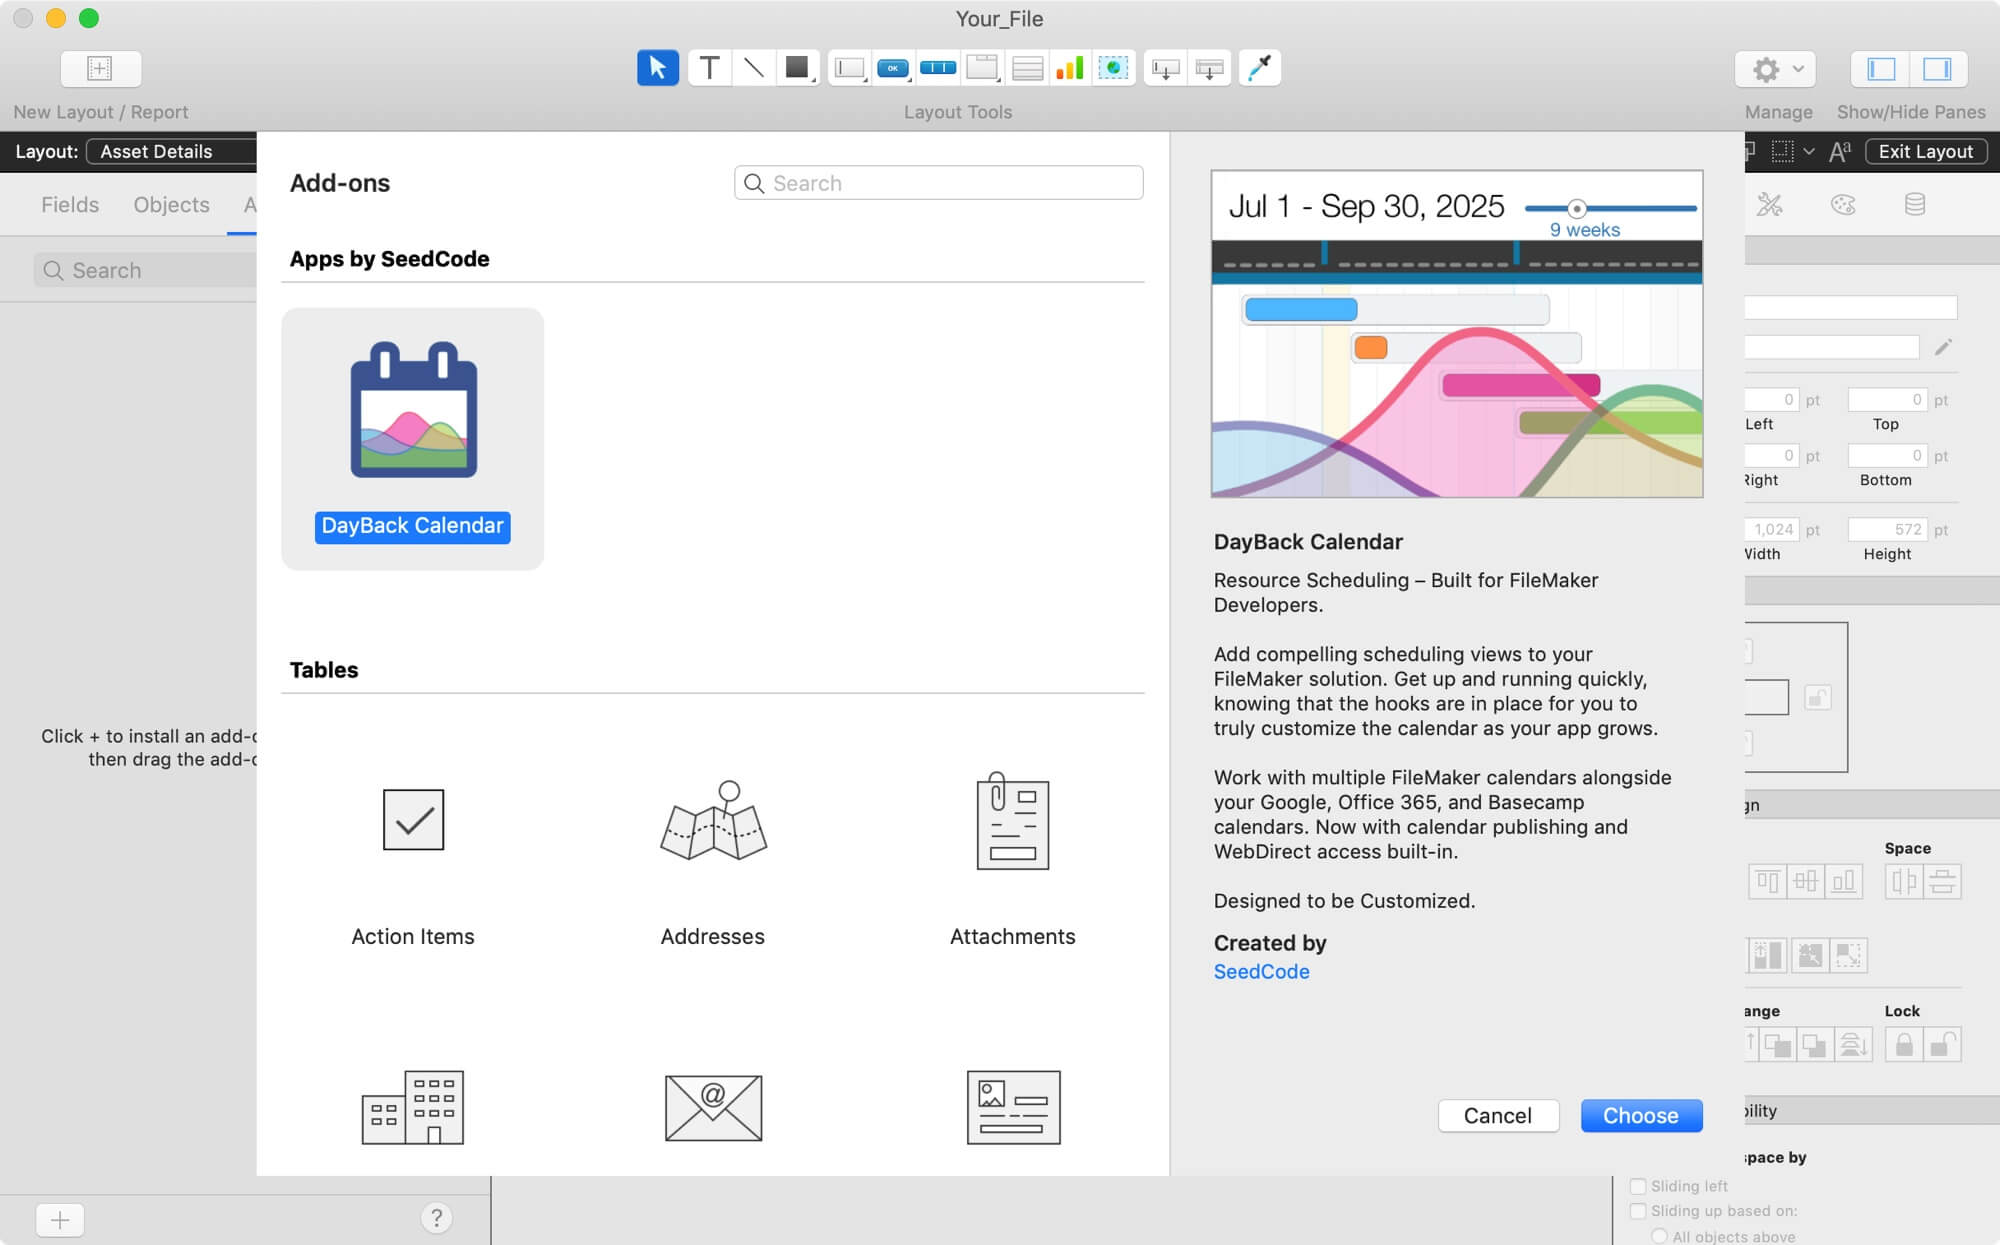 FileMaker 19 Add-Ons